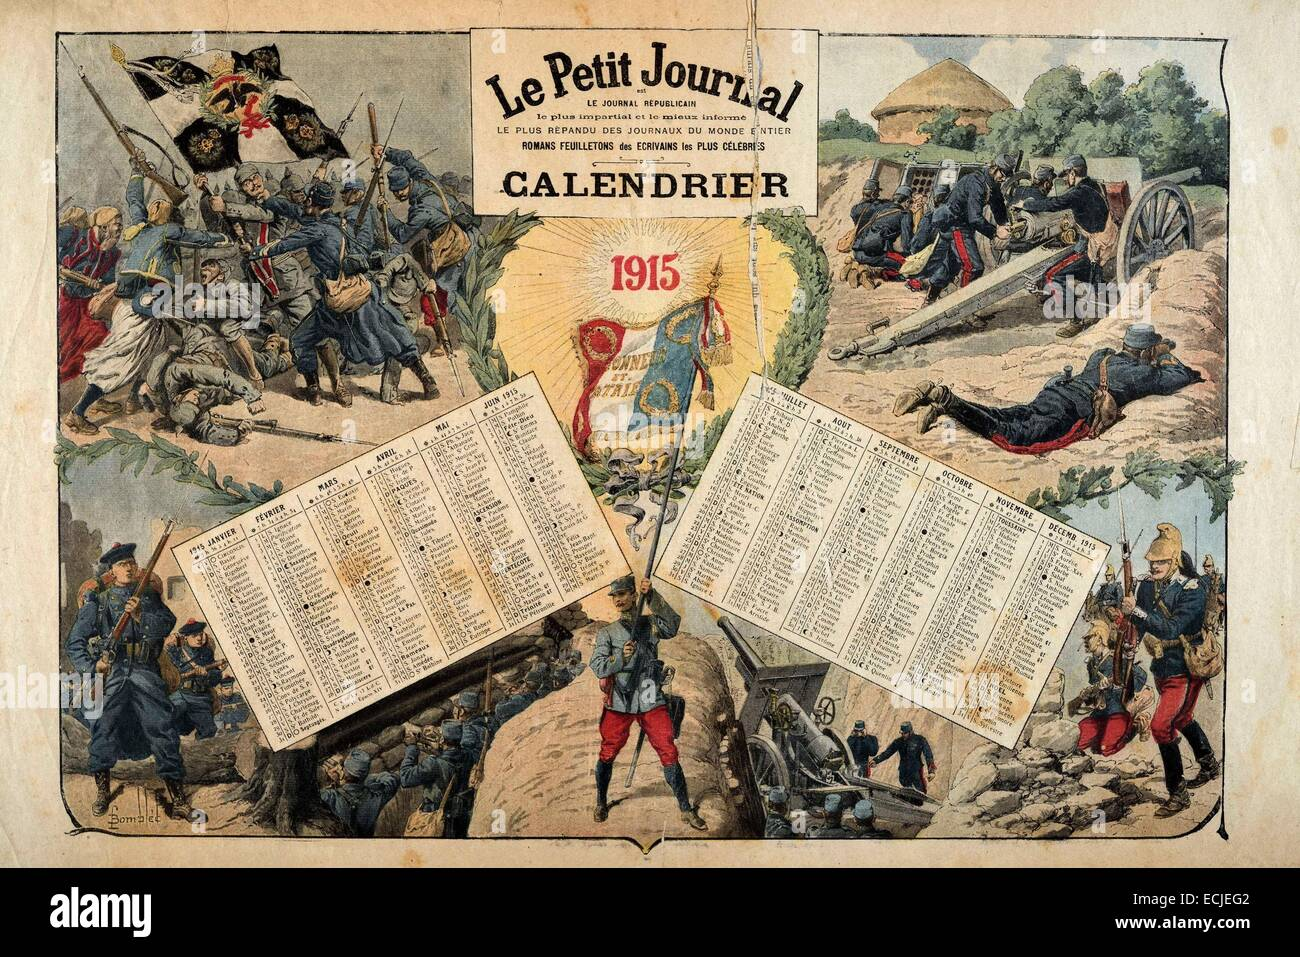 Calendario 1915.Le Petit Journal Iillustrated Supplemento Domenica 3